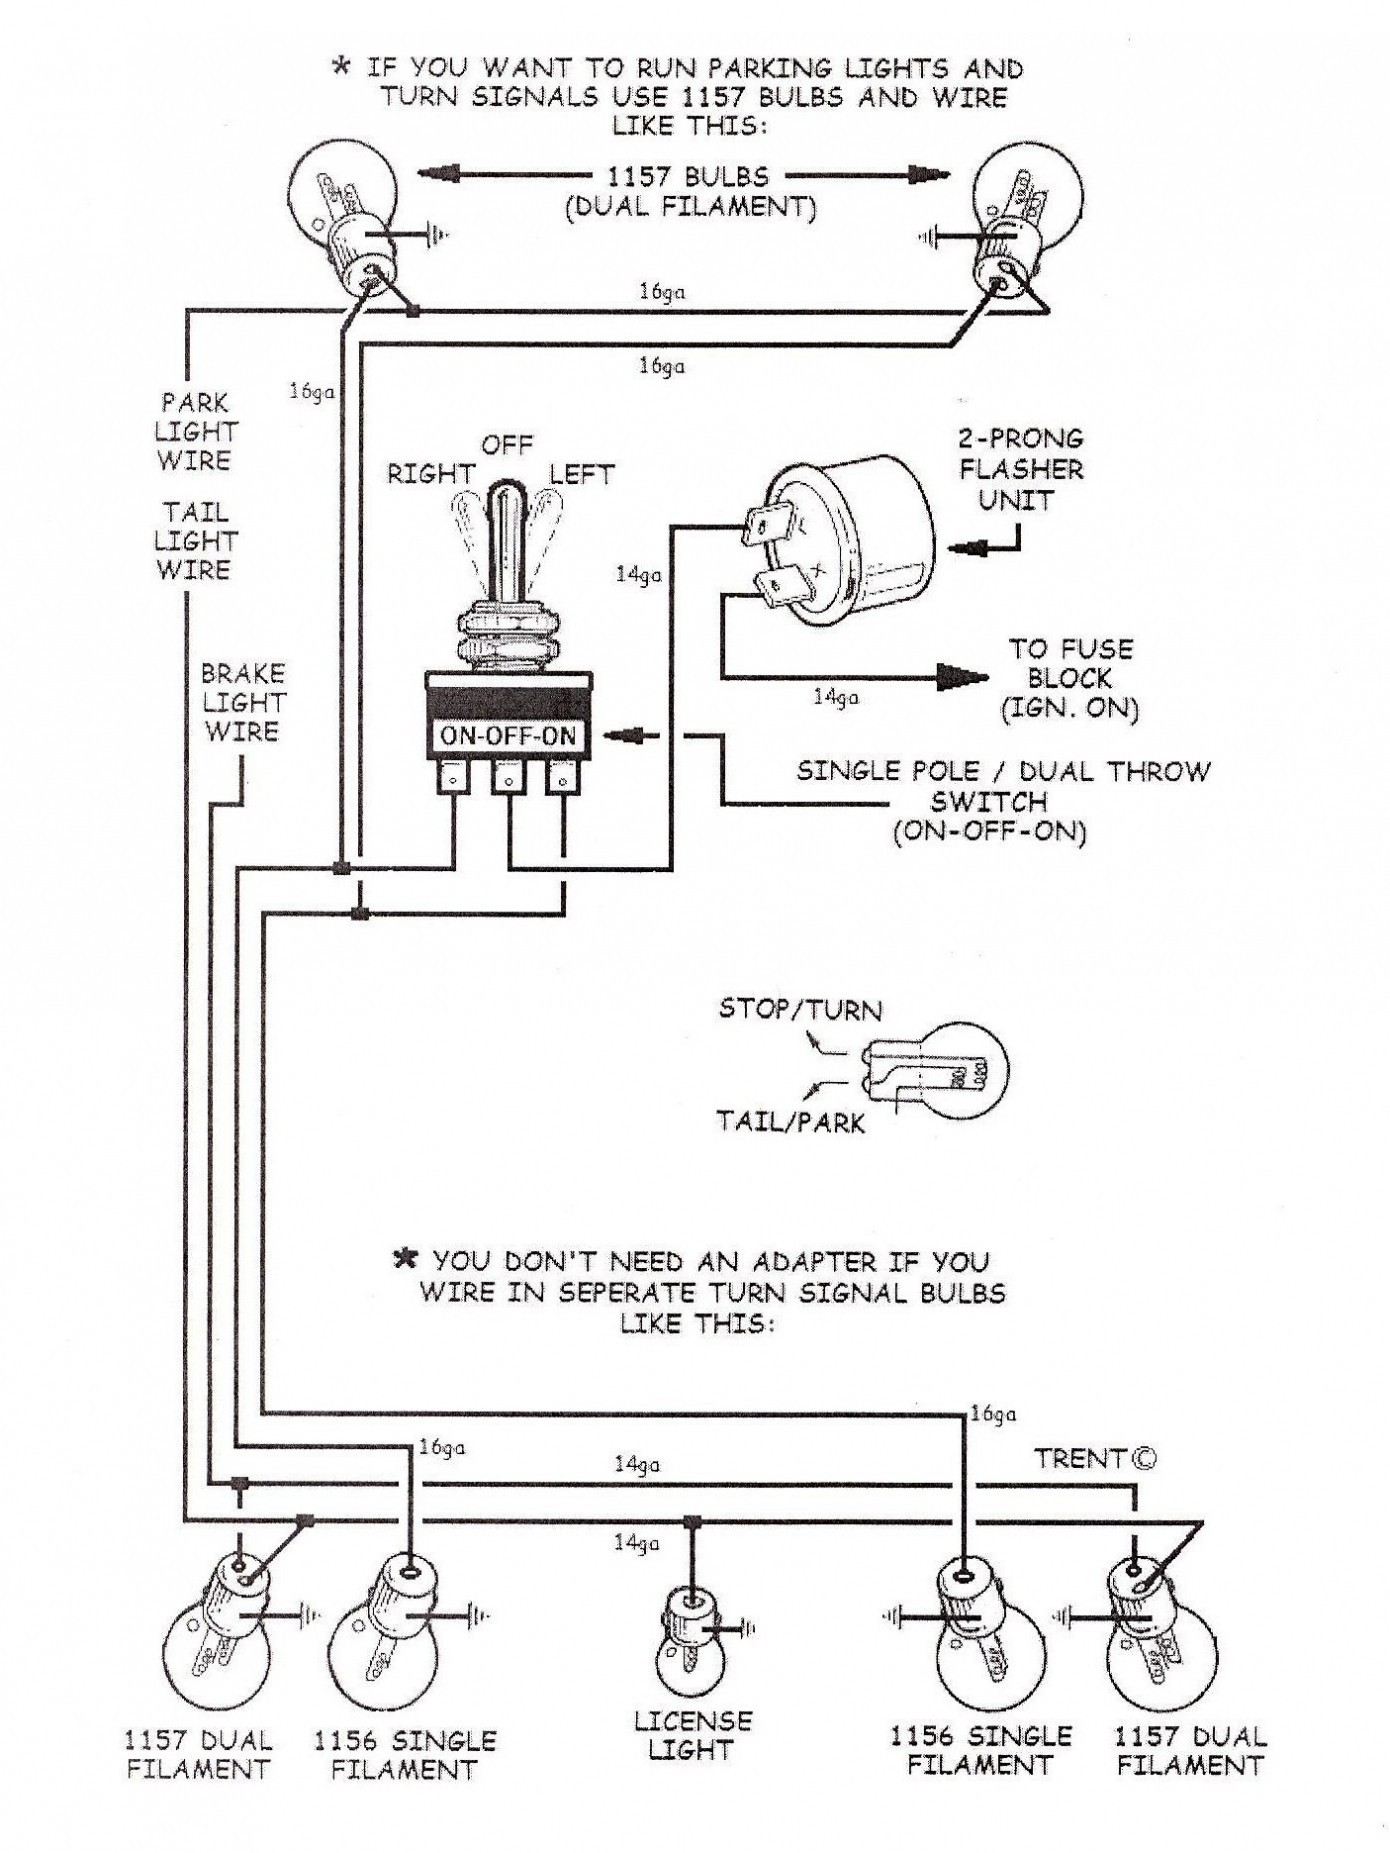 Wiring Diagram for Turn Signals Wiring Diagram A House New Lamp Wiring Diagram – Turn Signal Of Wiring Diagram for Turn Signals